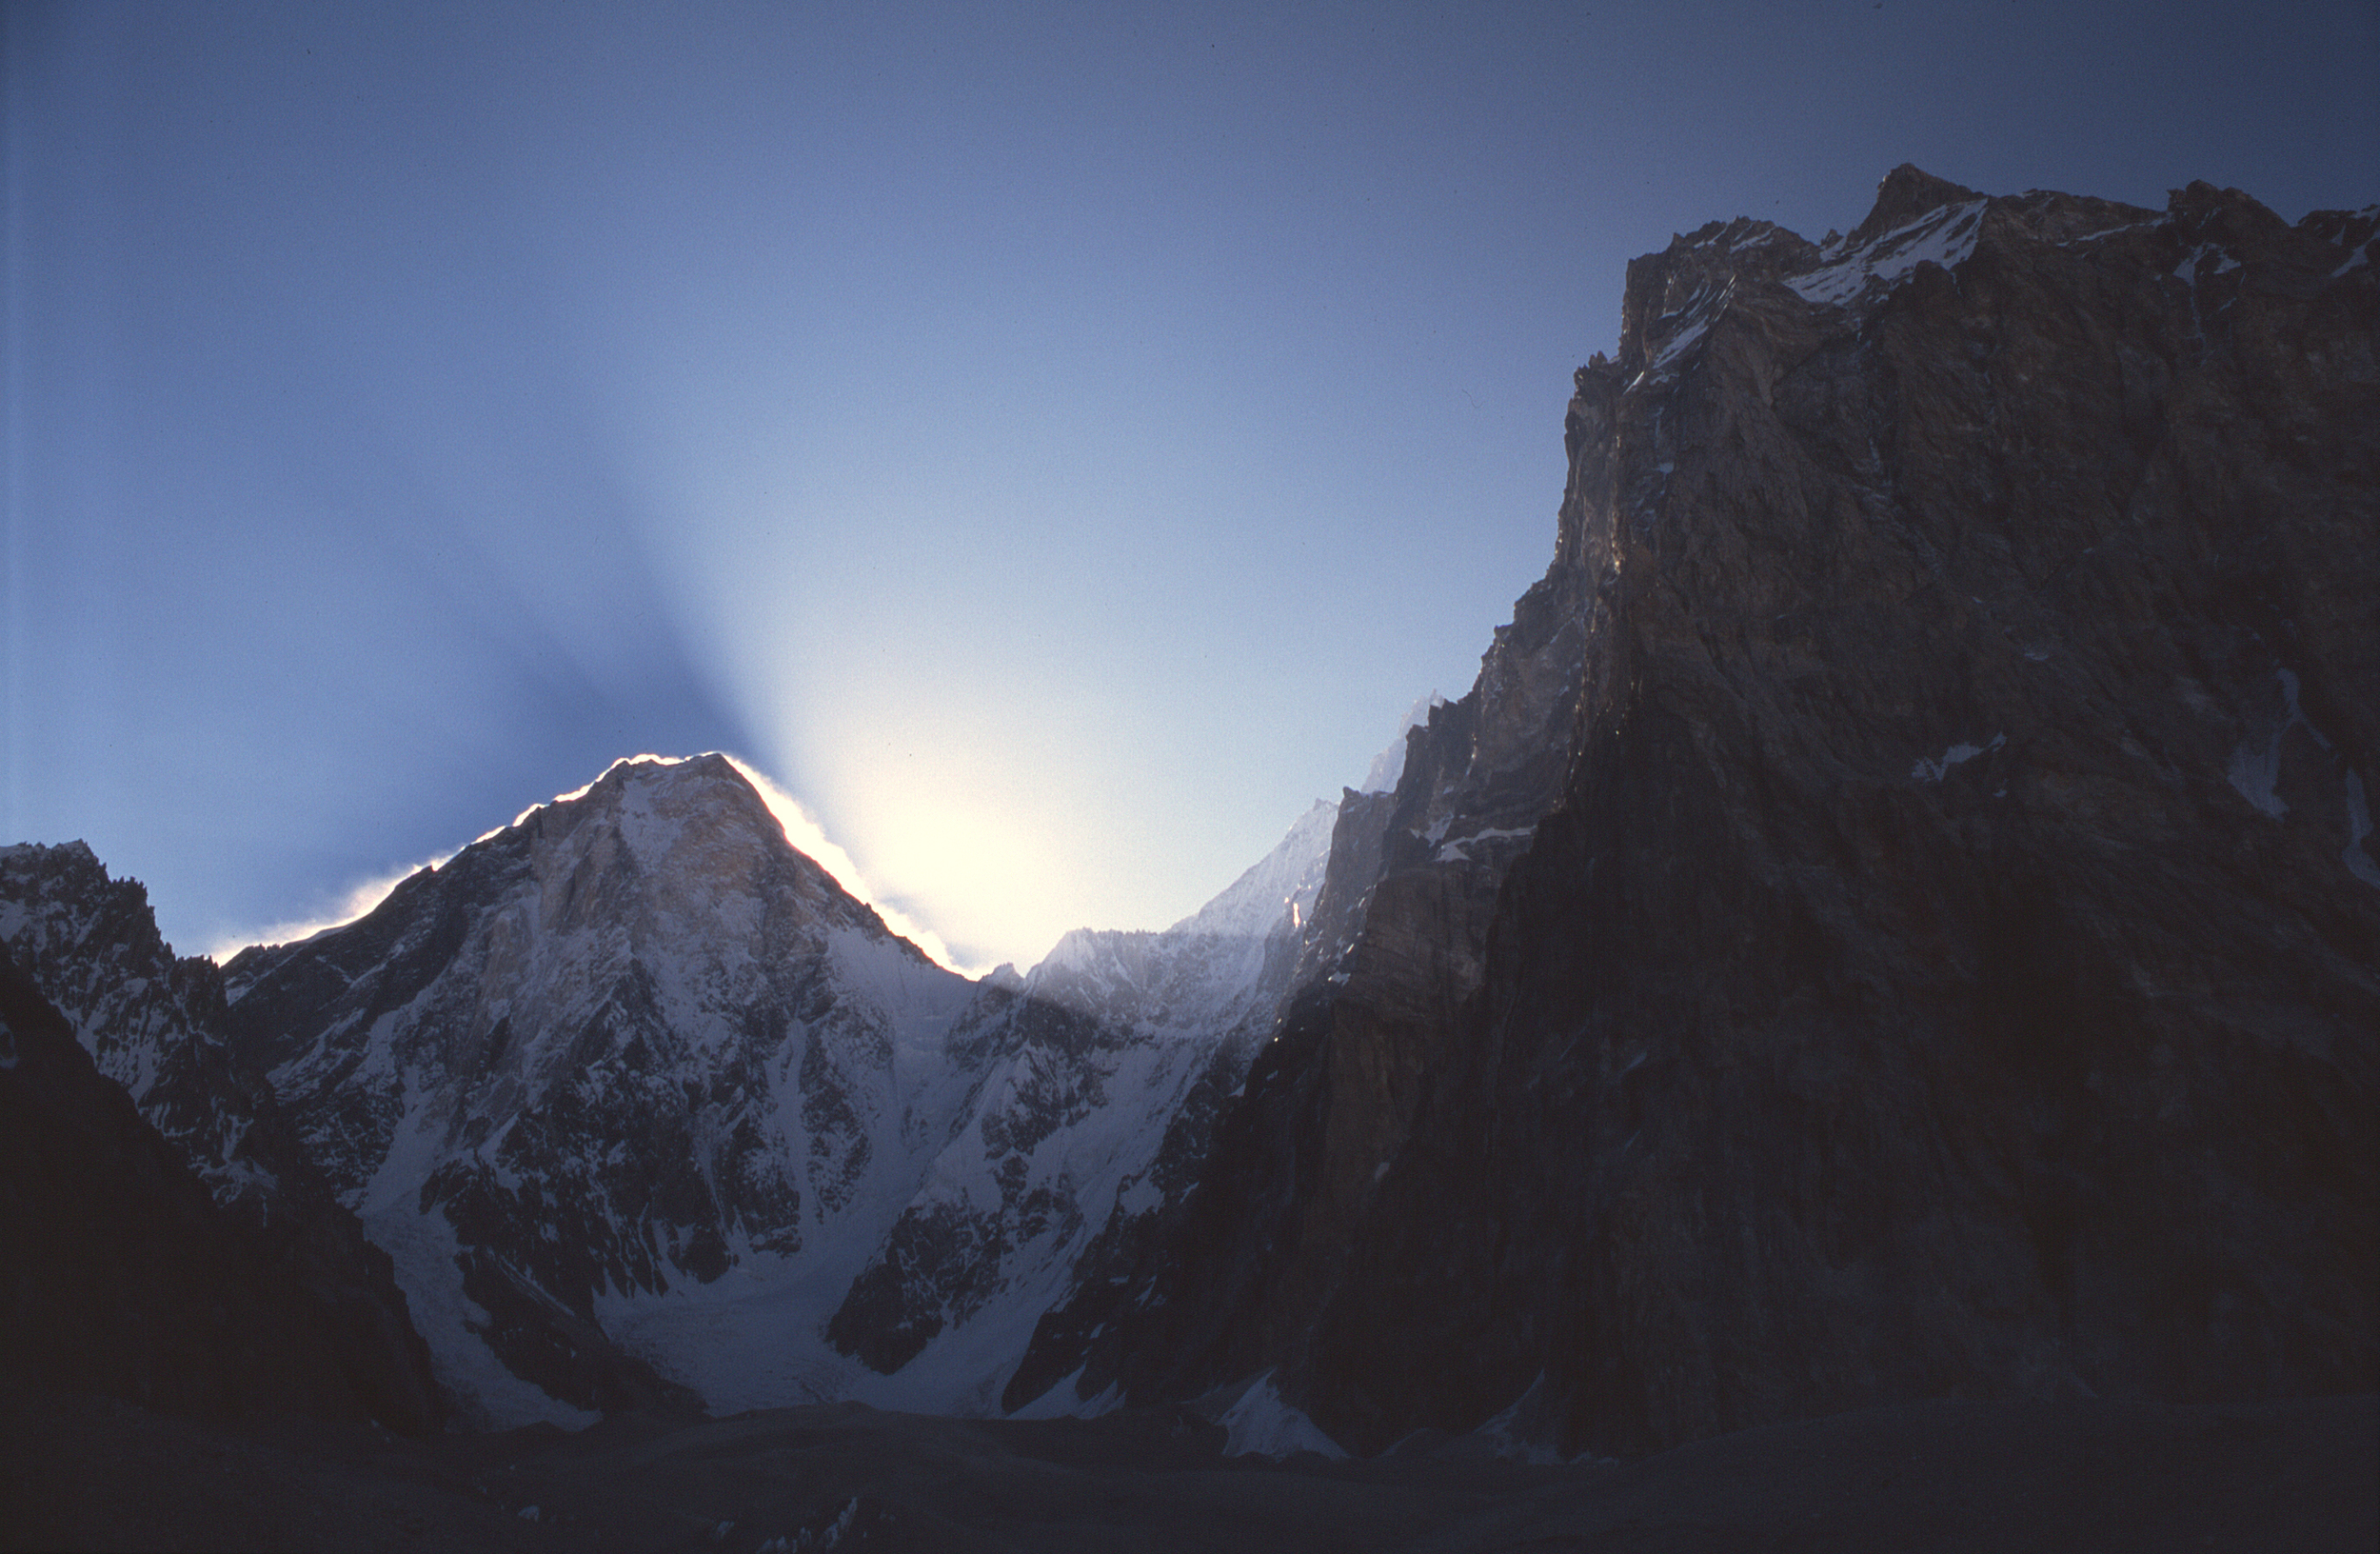 West face at dawn from base camp.